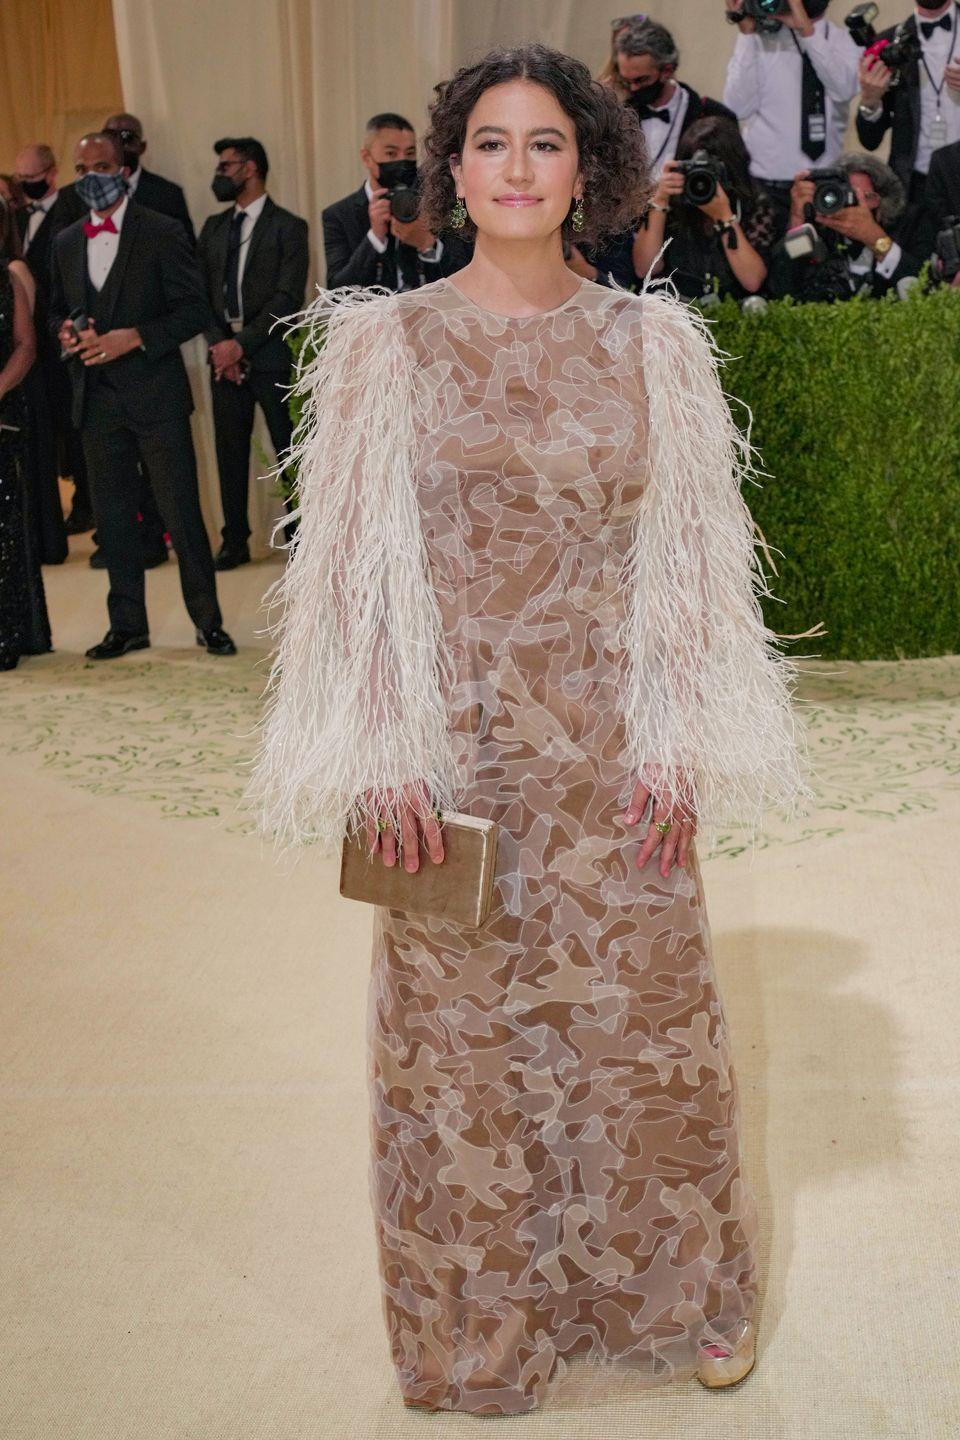 <p>Glazer looked chic in a patterned nude Aliette gown under a statement feathery sweater. Adding a pop of shimmer to the ensemble, she accessorized with a gold clutch and matching gold heels. </p>